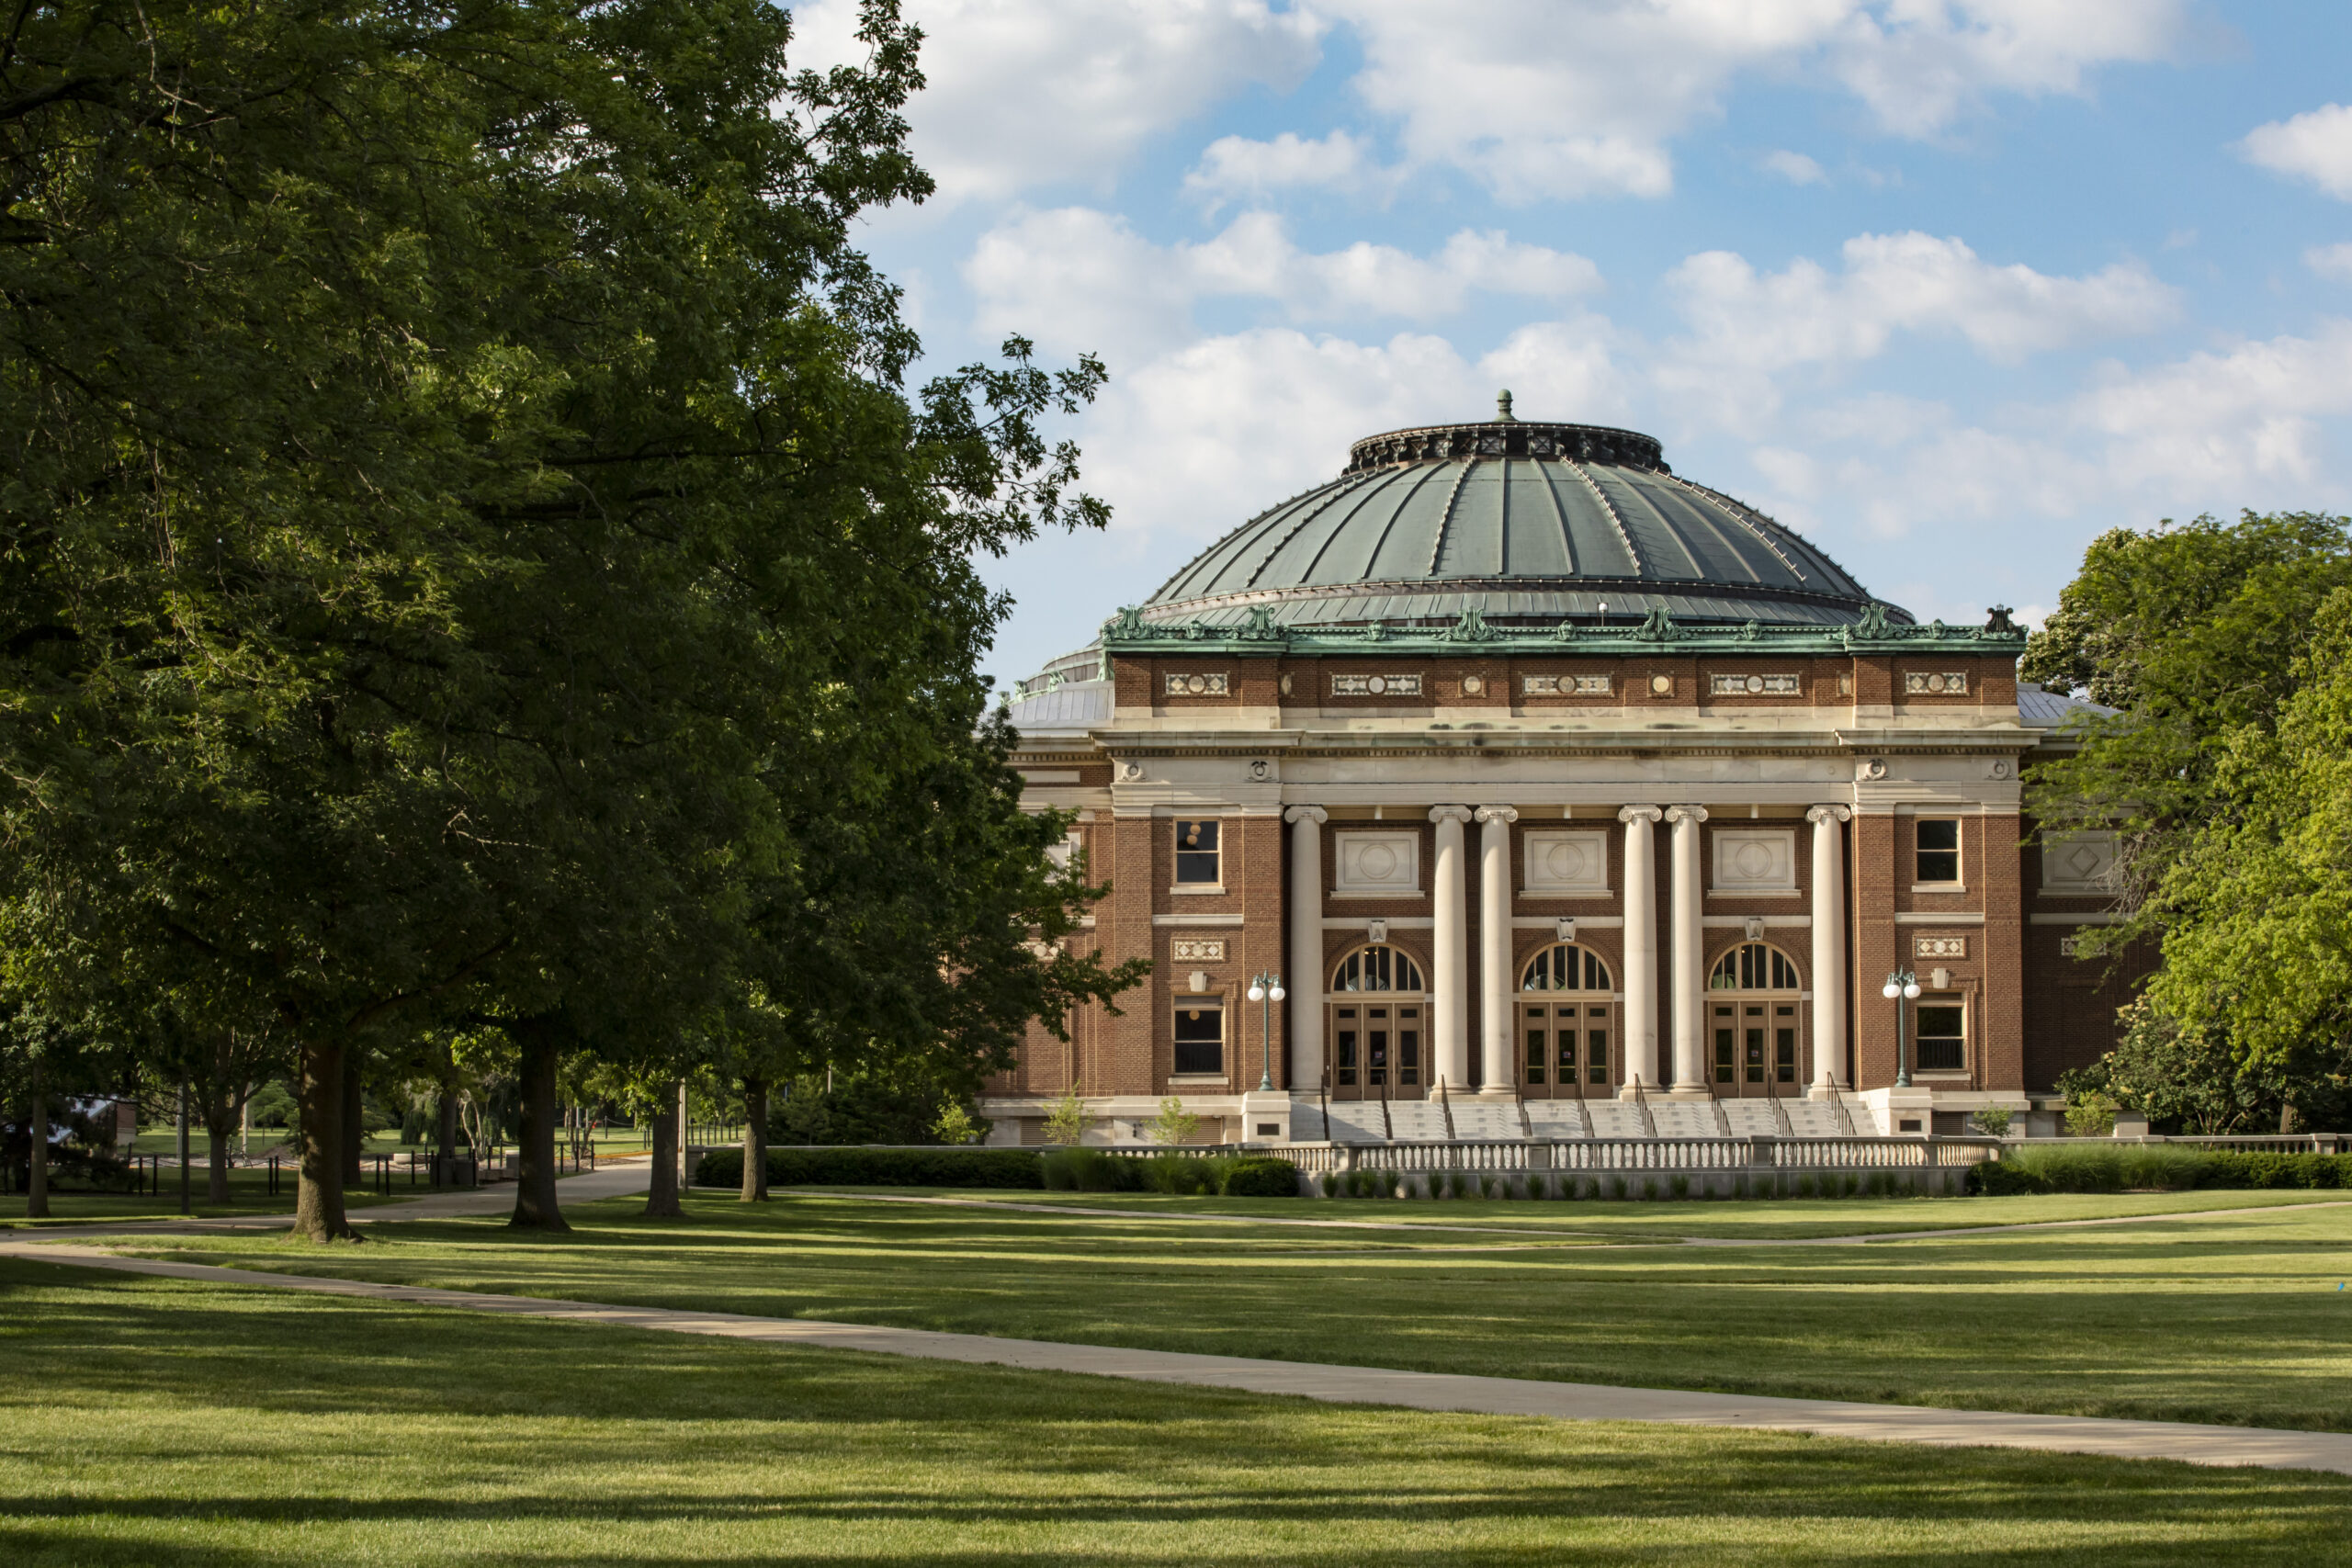 foellinger auditorium surrounded by green grass and trees